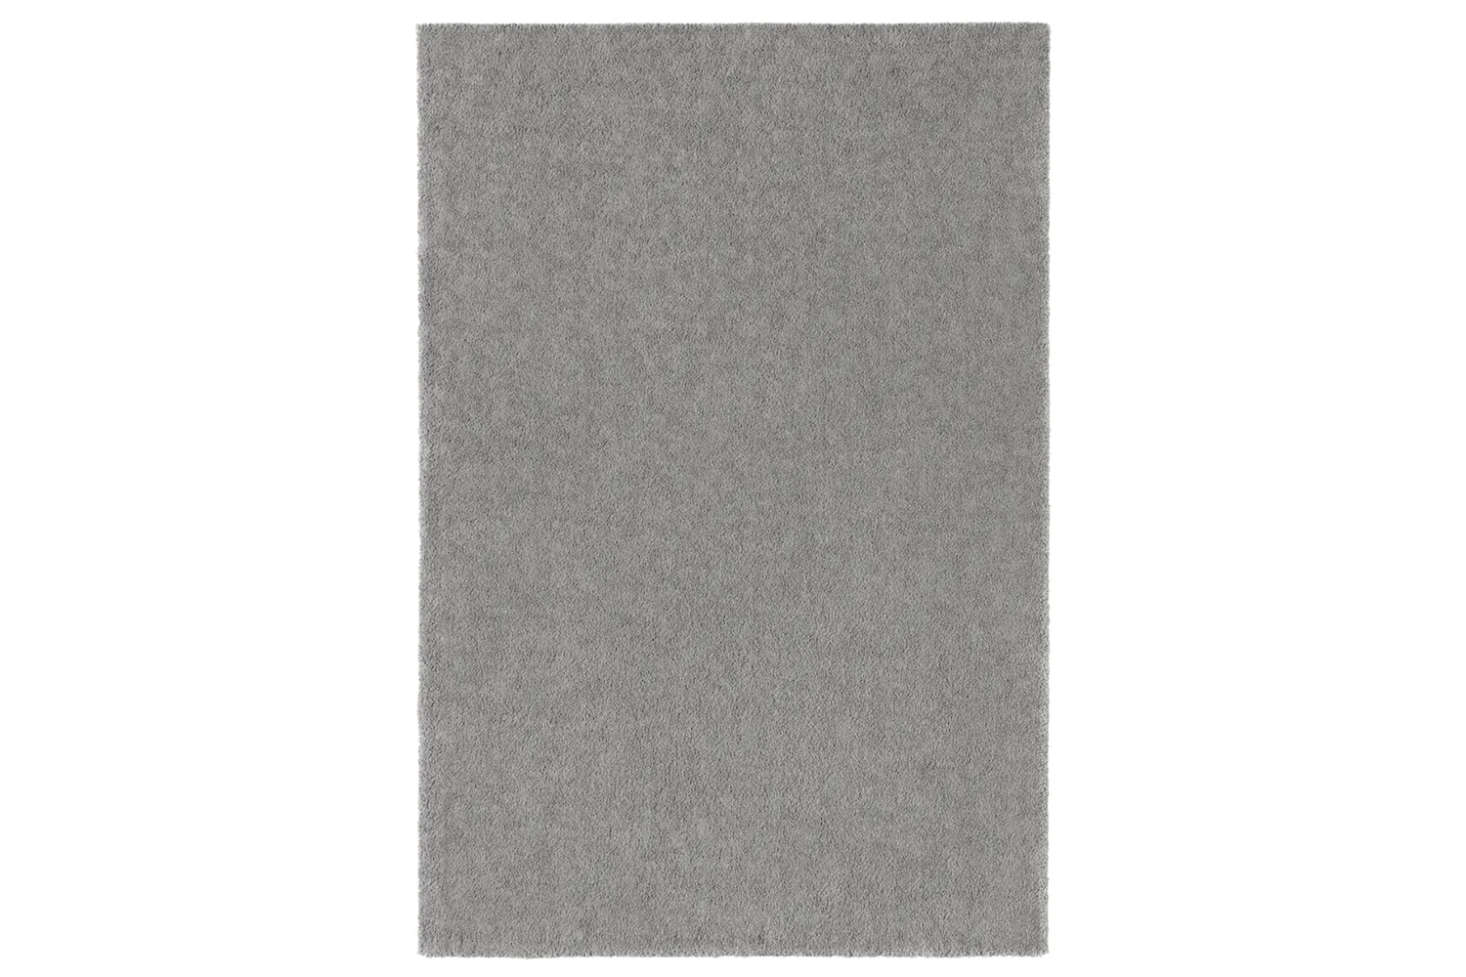 The Stoense Low Pile Rug in Medium Grey, size 6&#8